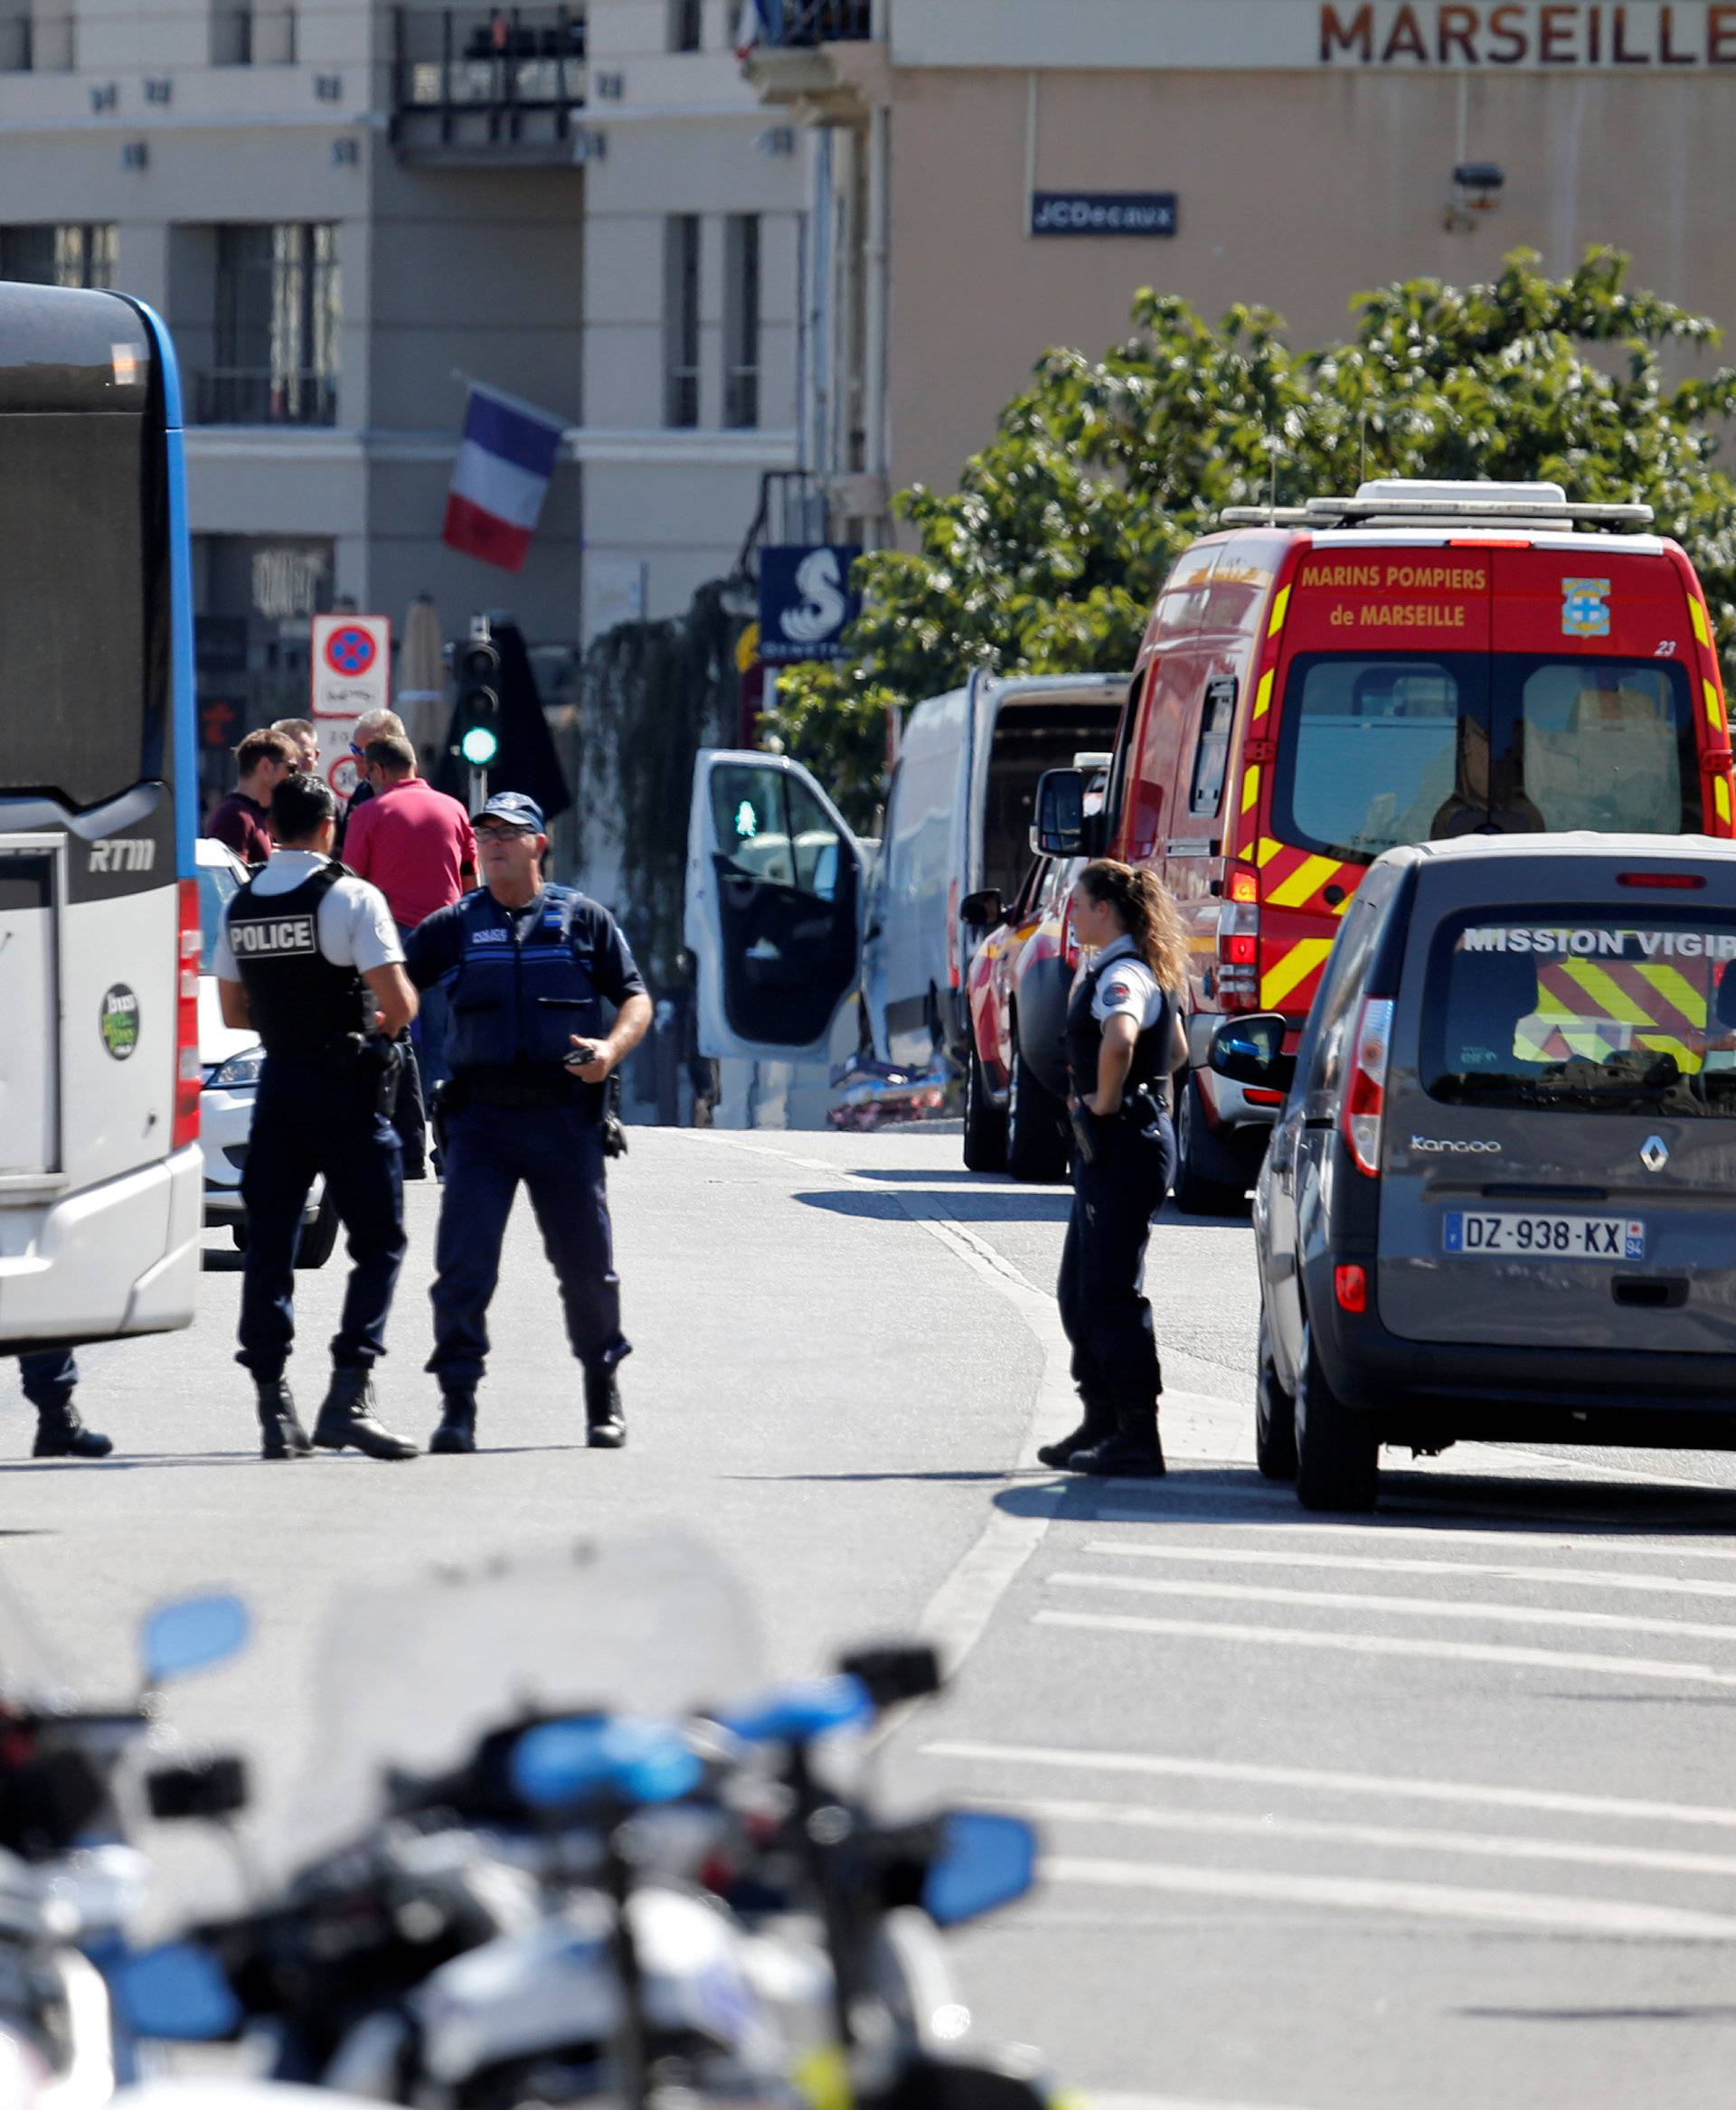 French police secure the area in the French port city of Marseille where one person was killed and another injured after a car crashed into two bus shelters